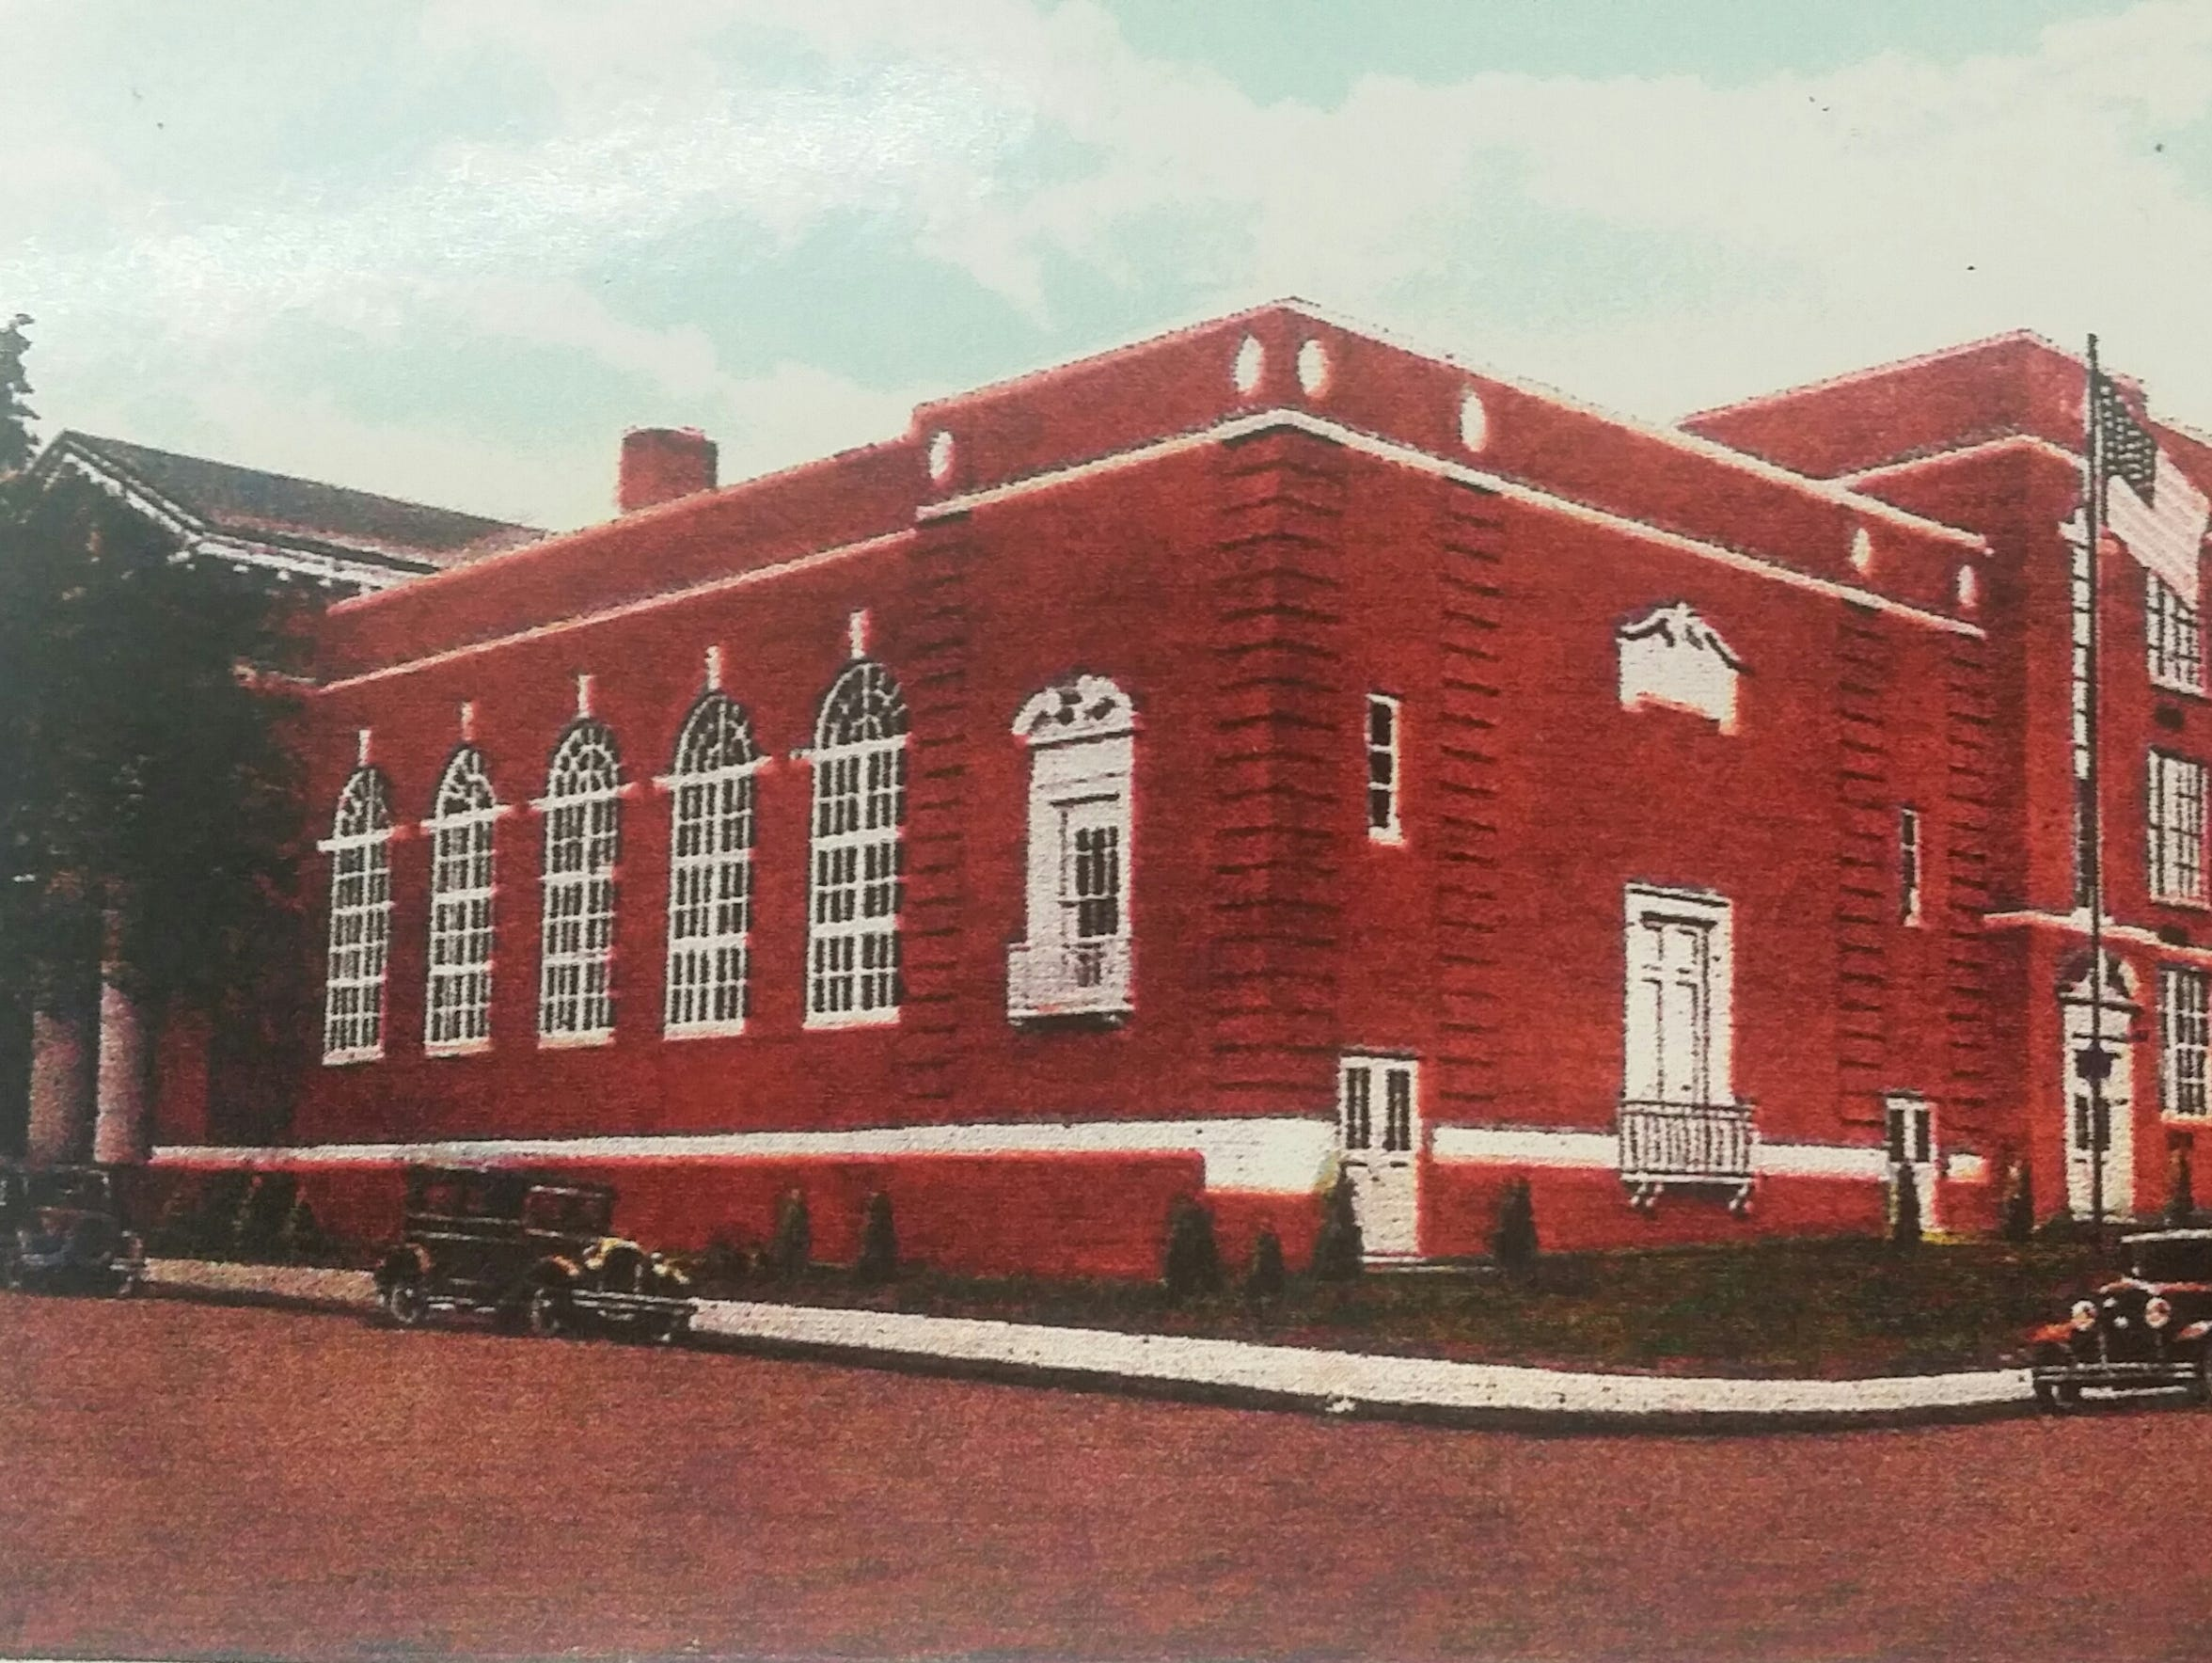 Chambersburg High School, as seen from the corner of